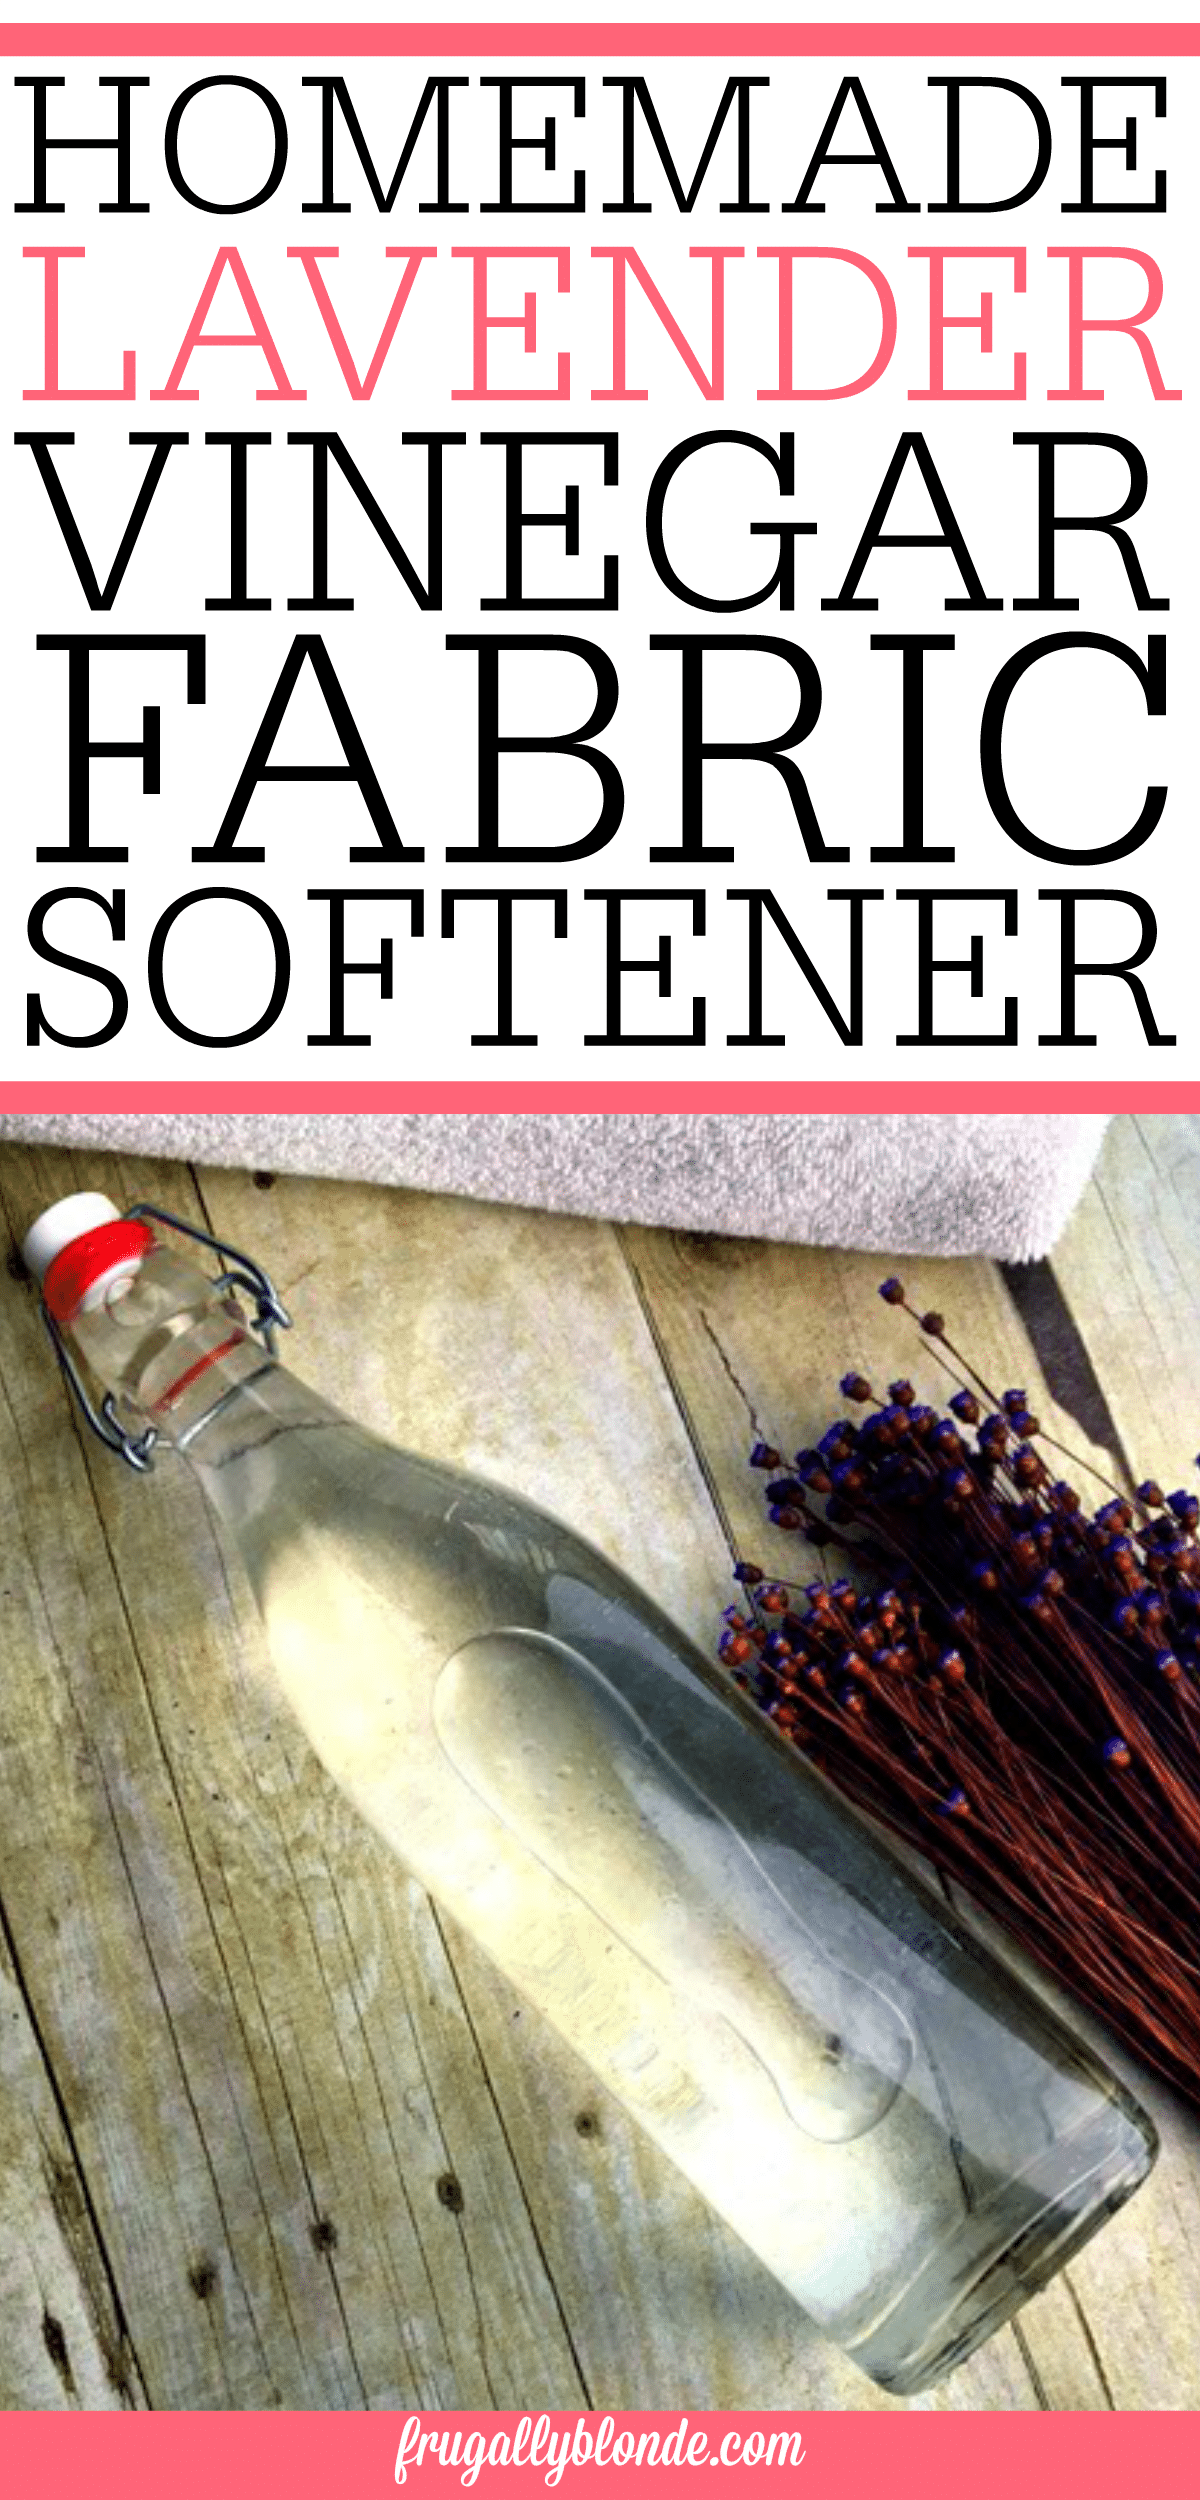 Want soft clothes without all the gross chemicals? Try this AMAZING homemade lavender and vinegar fabric softener. This homemade fabric softener works great!